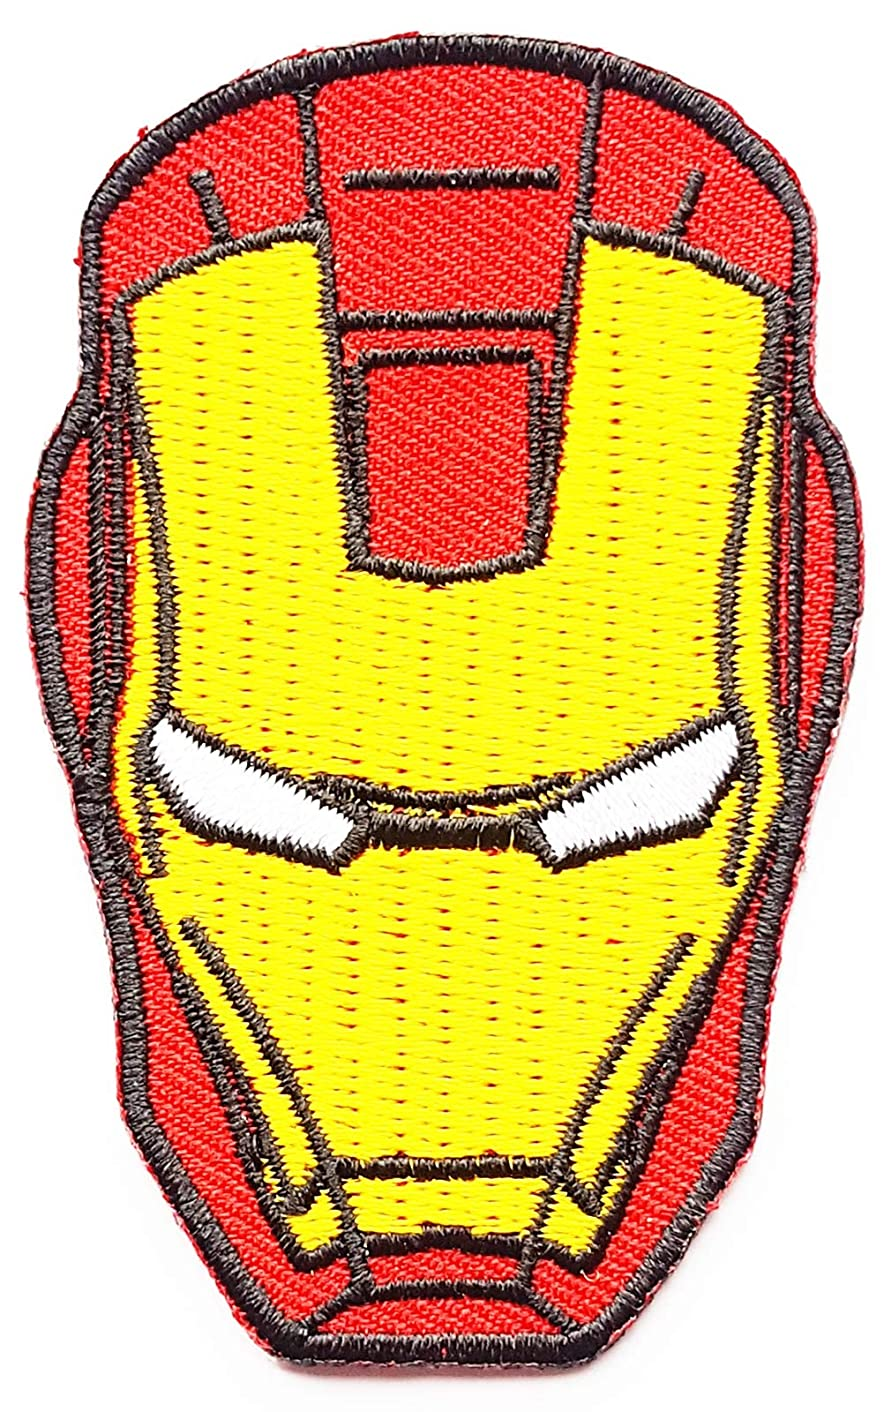 Iron Man Superhero Marvel Comics Children Kids Cartoon Patch Applique for Clothes Great as Happy Birthday Gift